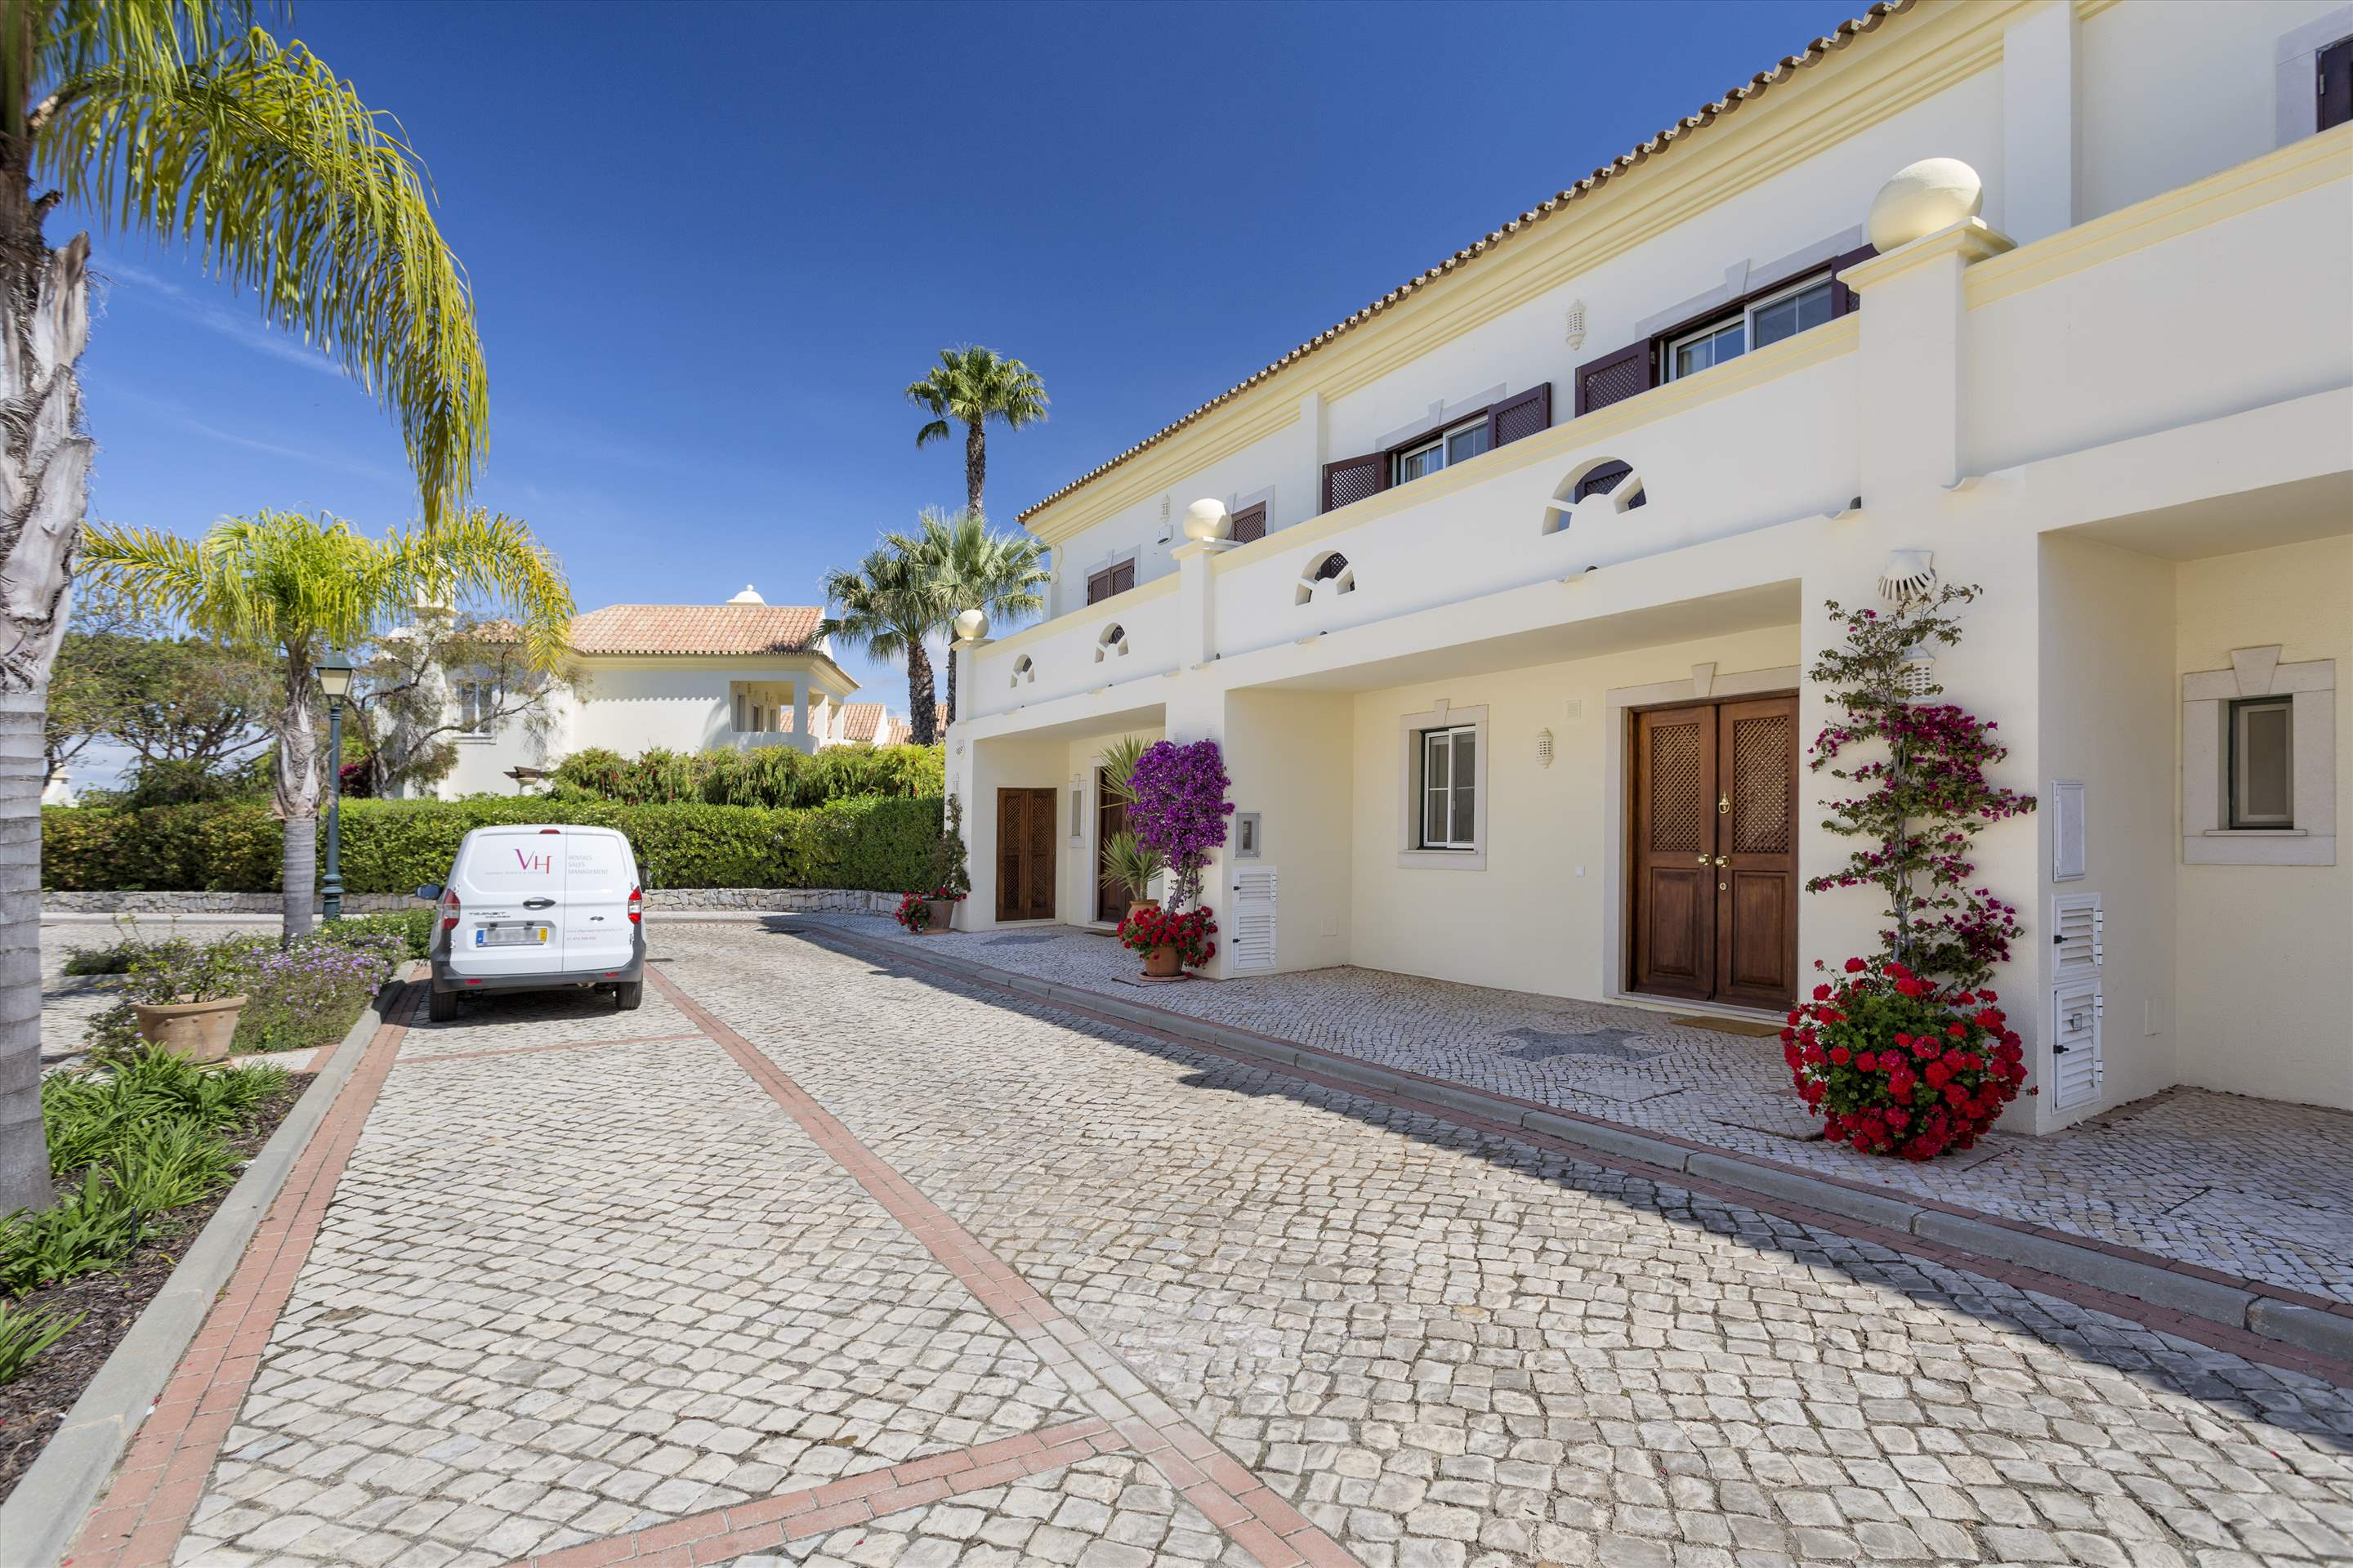 Townhouse Jessica, 3 bedroom villa in Quinta do Lago, Algarve Photo #9